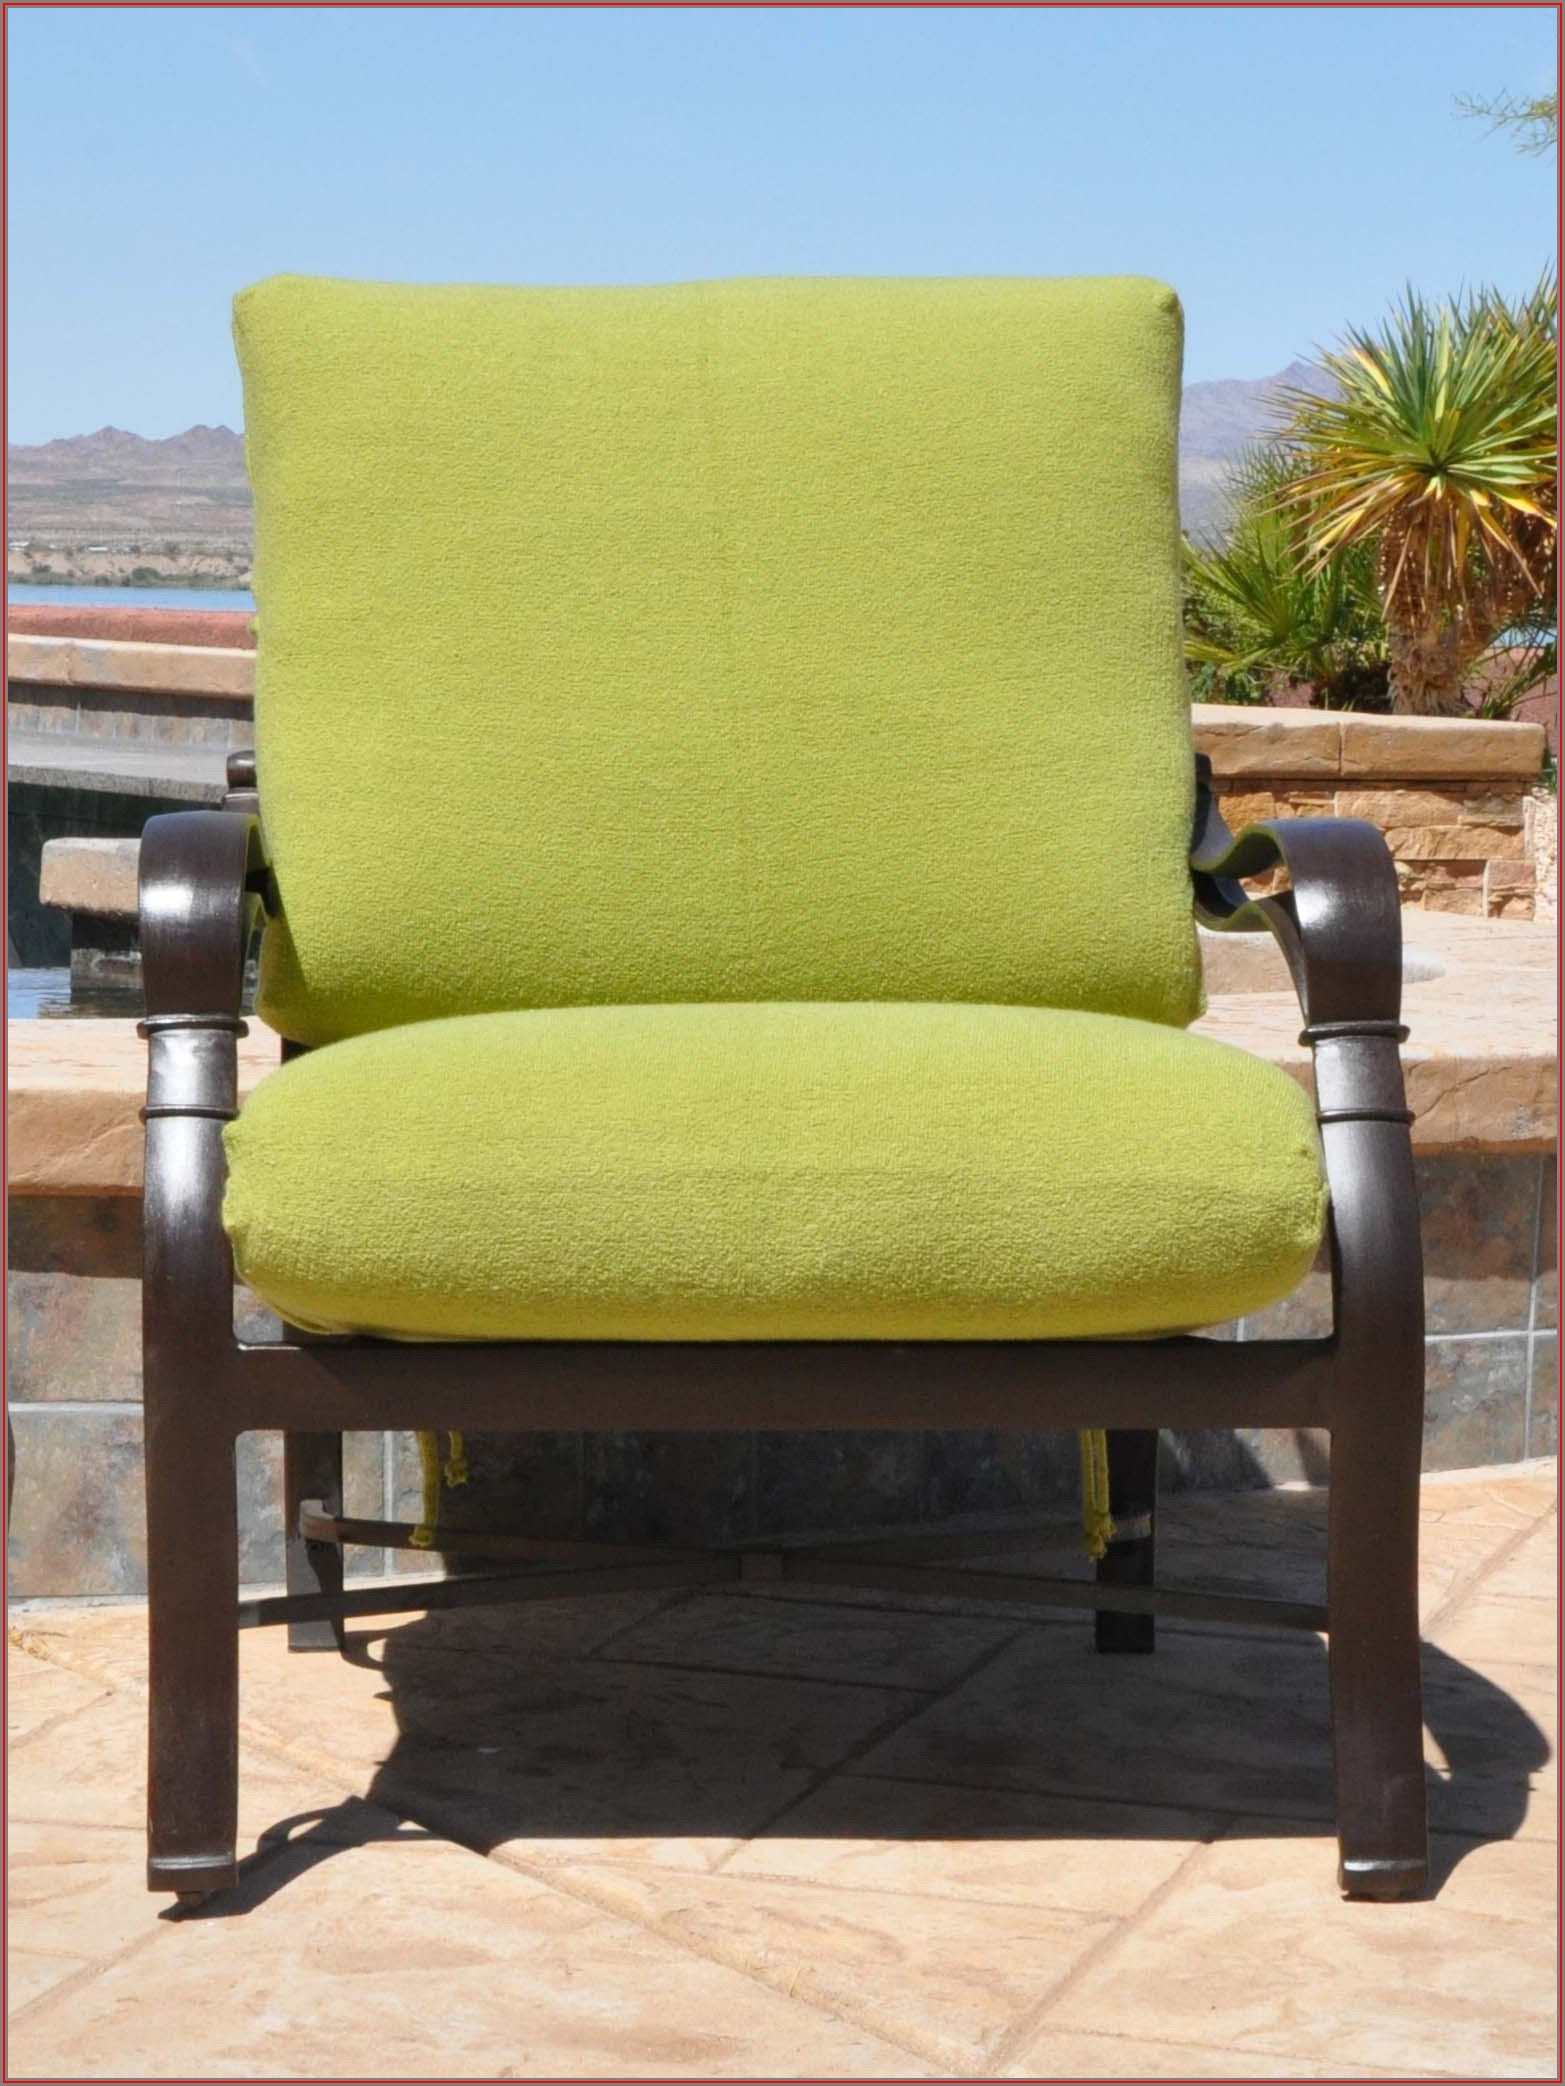 Patio Furniture Cushion Slipcovers